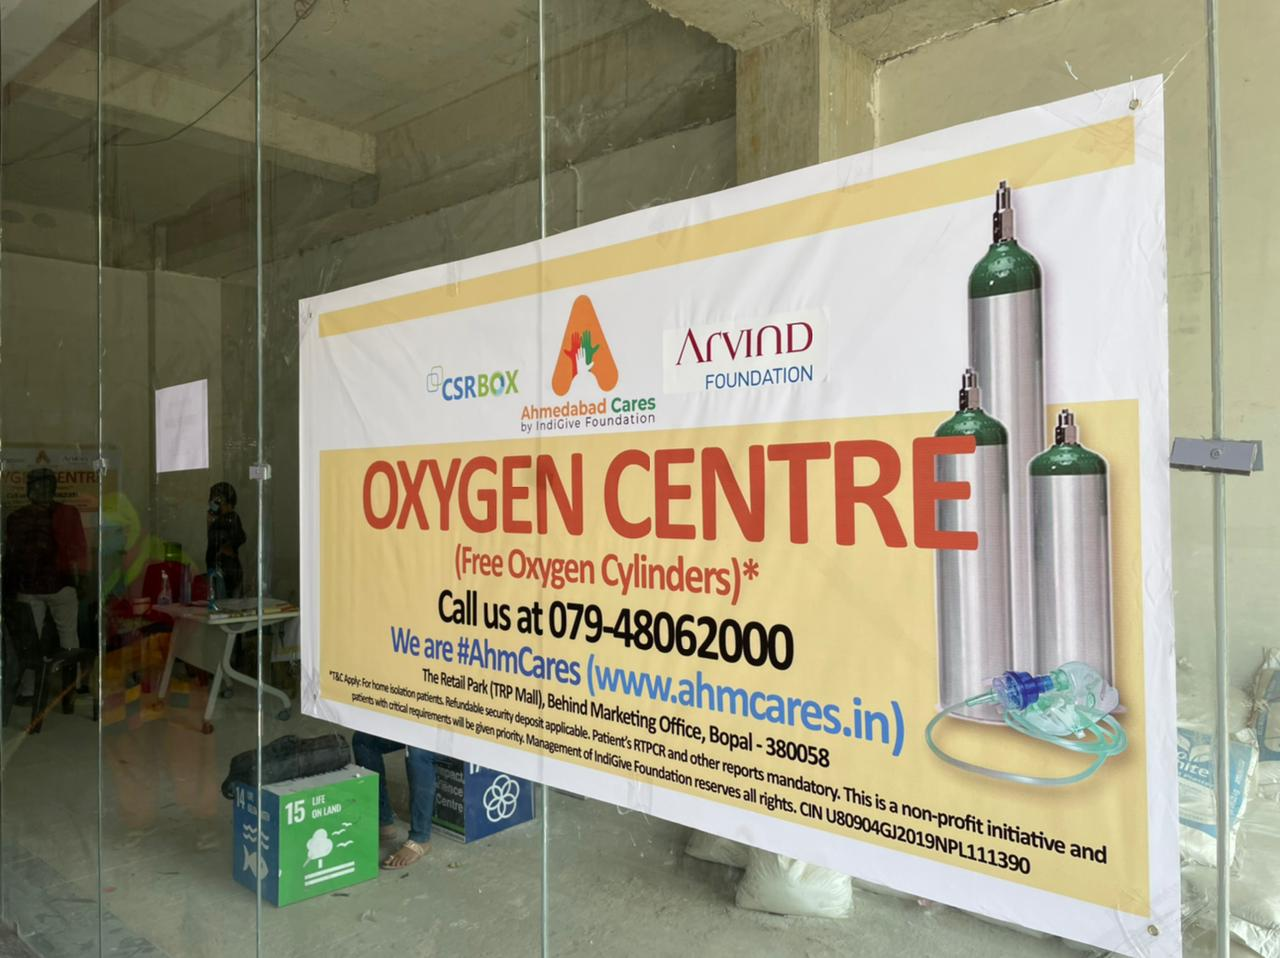 Oxygen Centre - an initiative by Arvind Foundation and CSRBOX for Helping Covid-19 Patients to Get Oxygen Cylinders